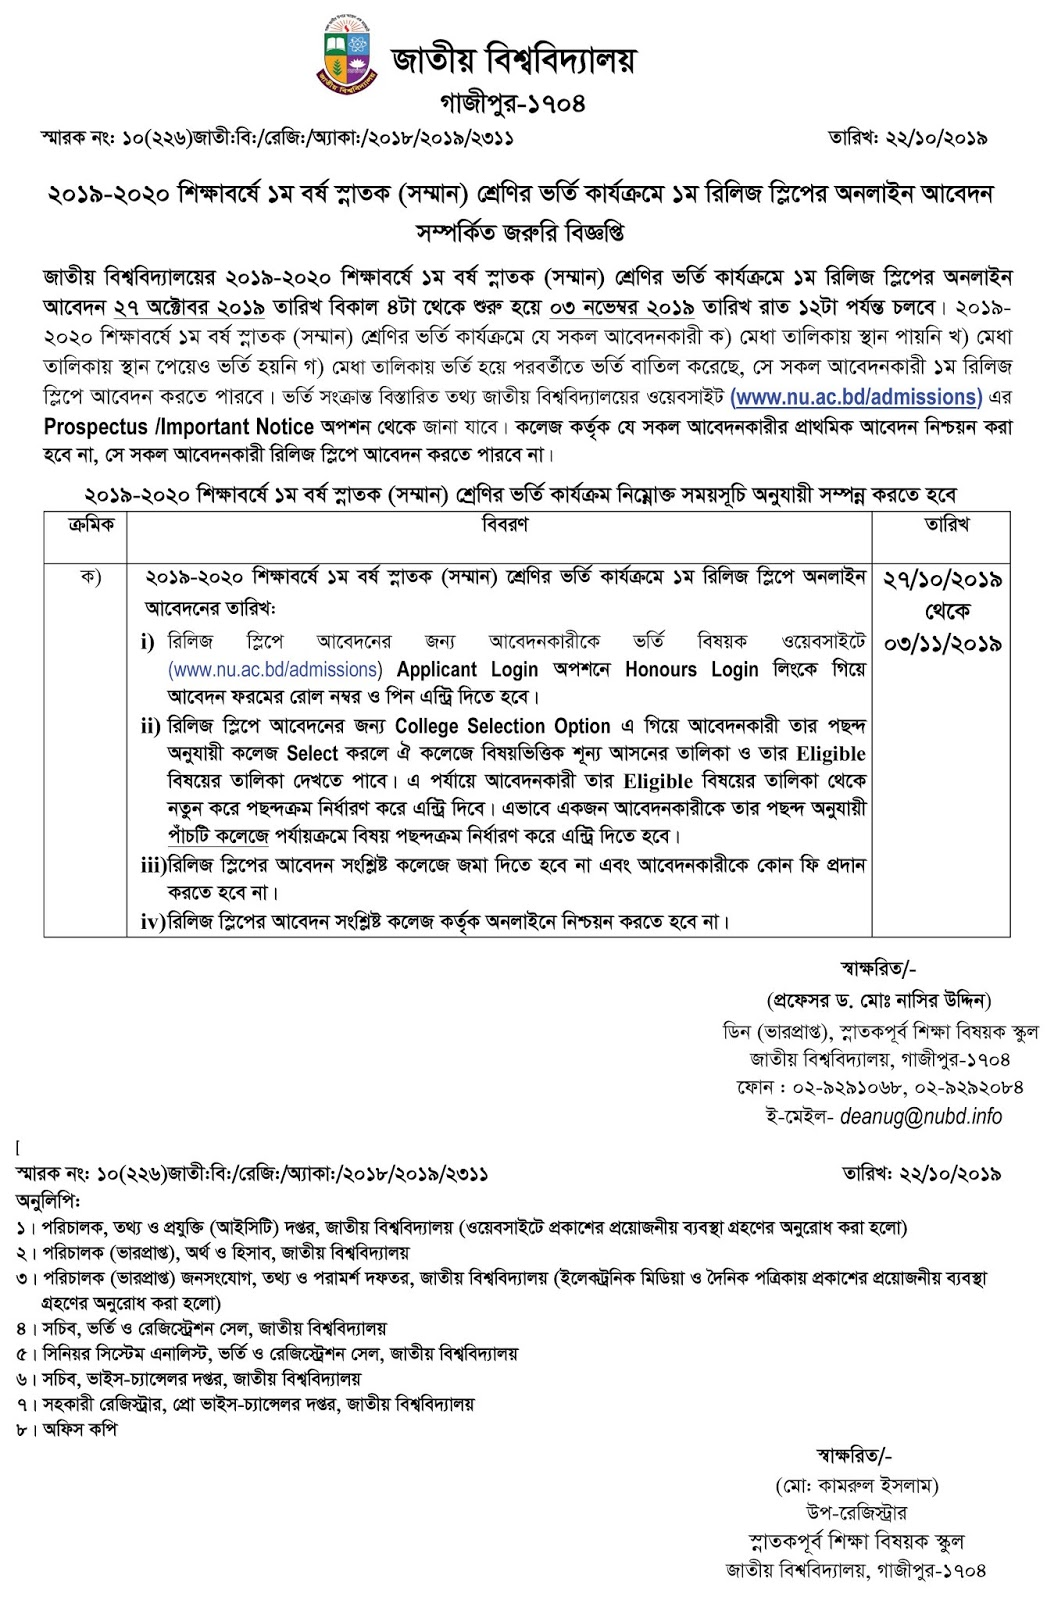 Honours Release Slip Notice 2019-2020 Download Pdf